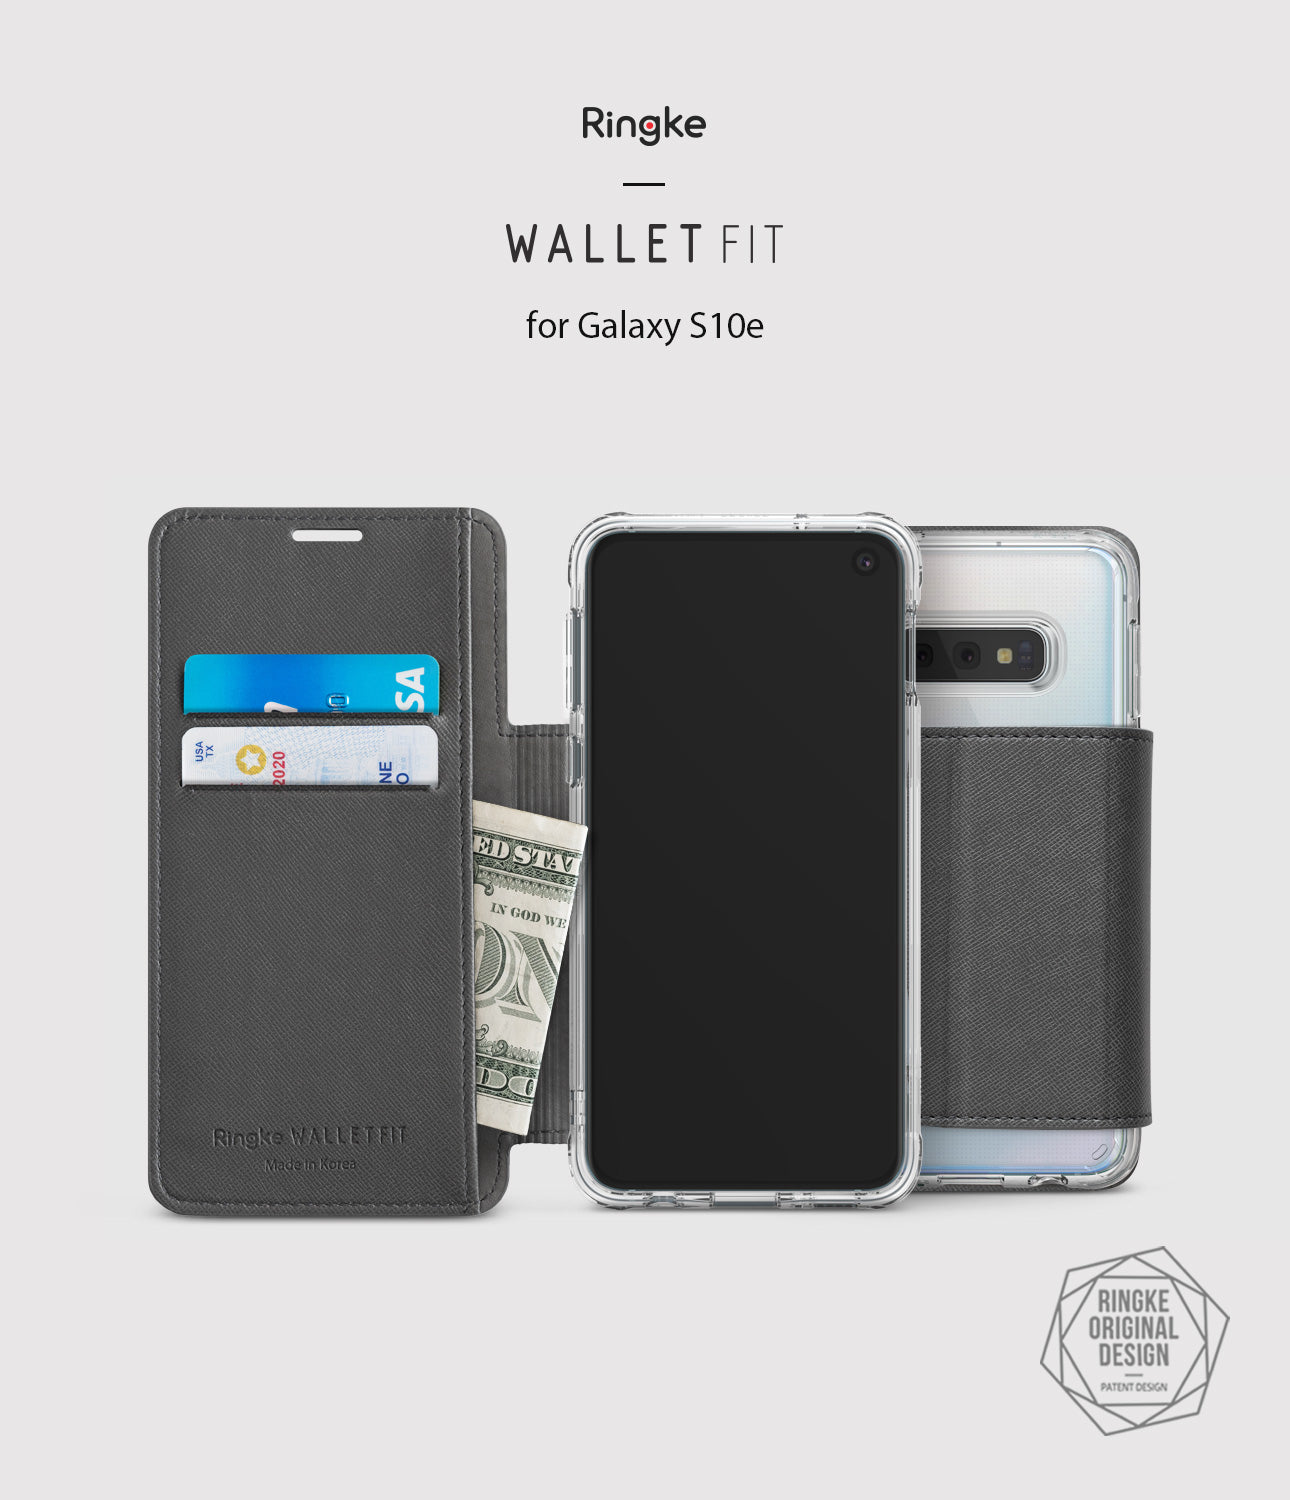 galaxy s10e wallet wallet-fit